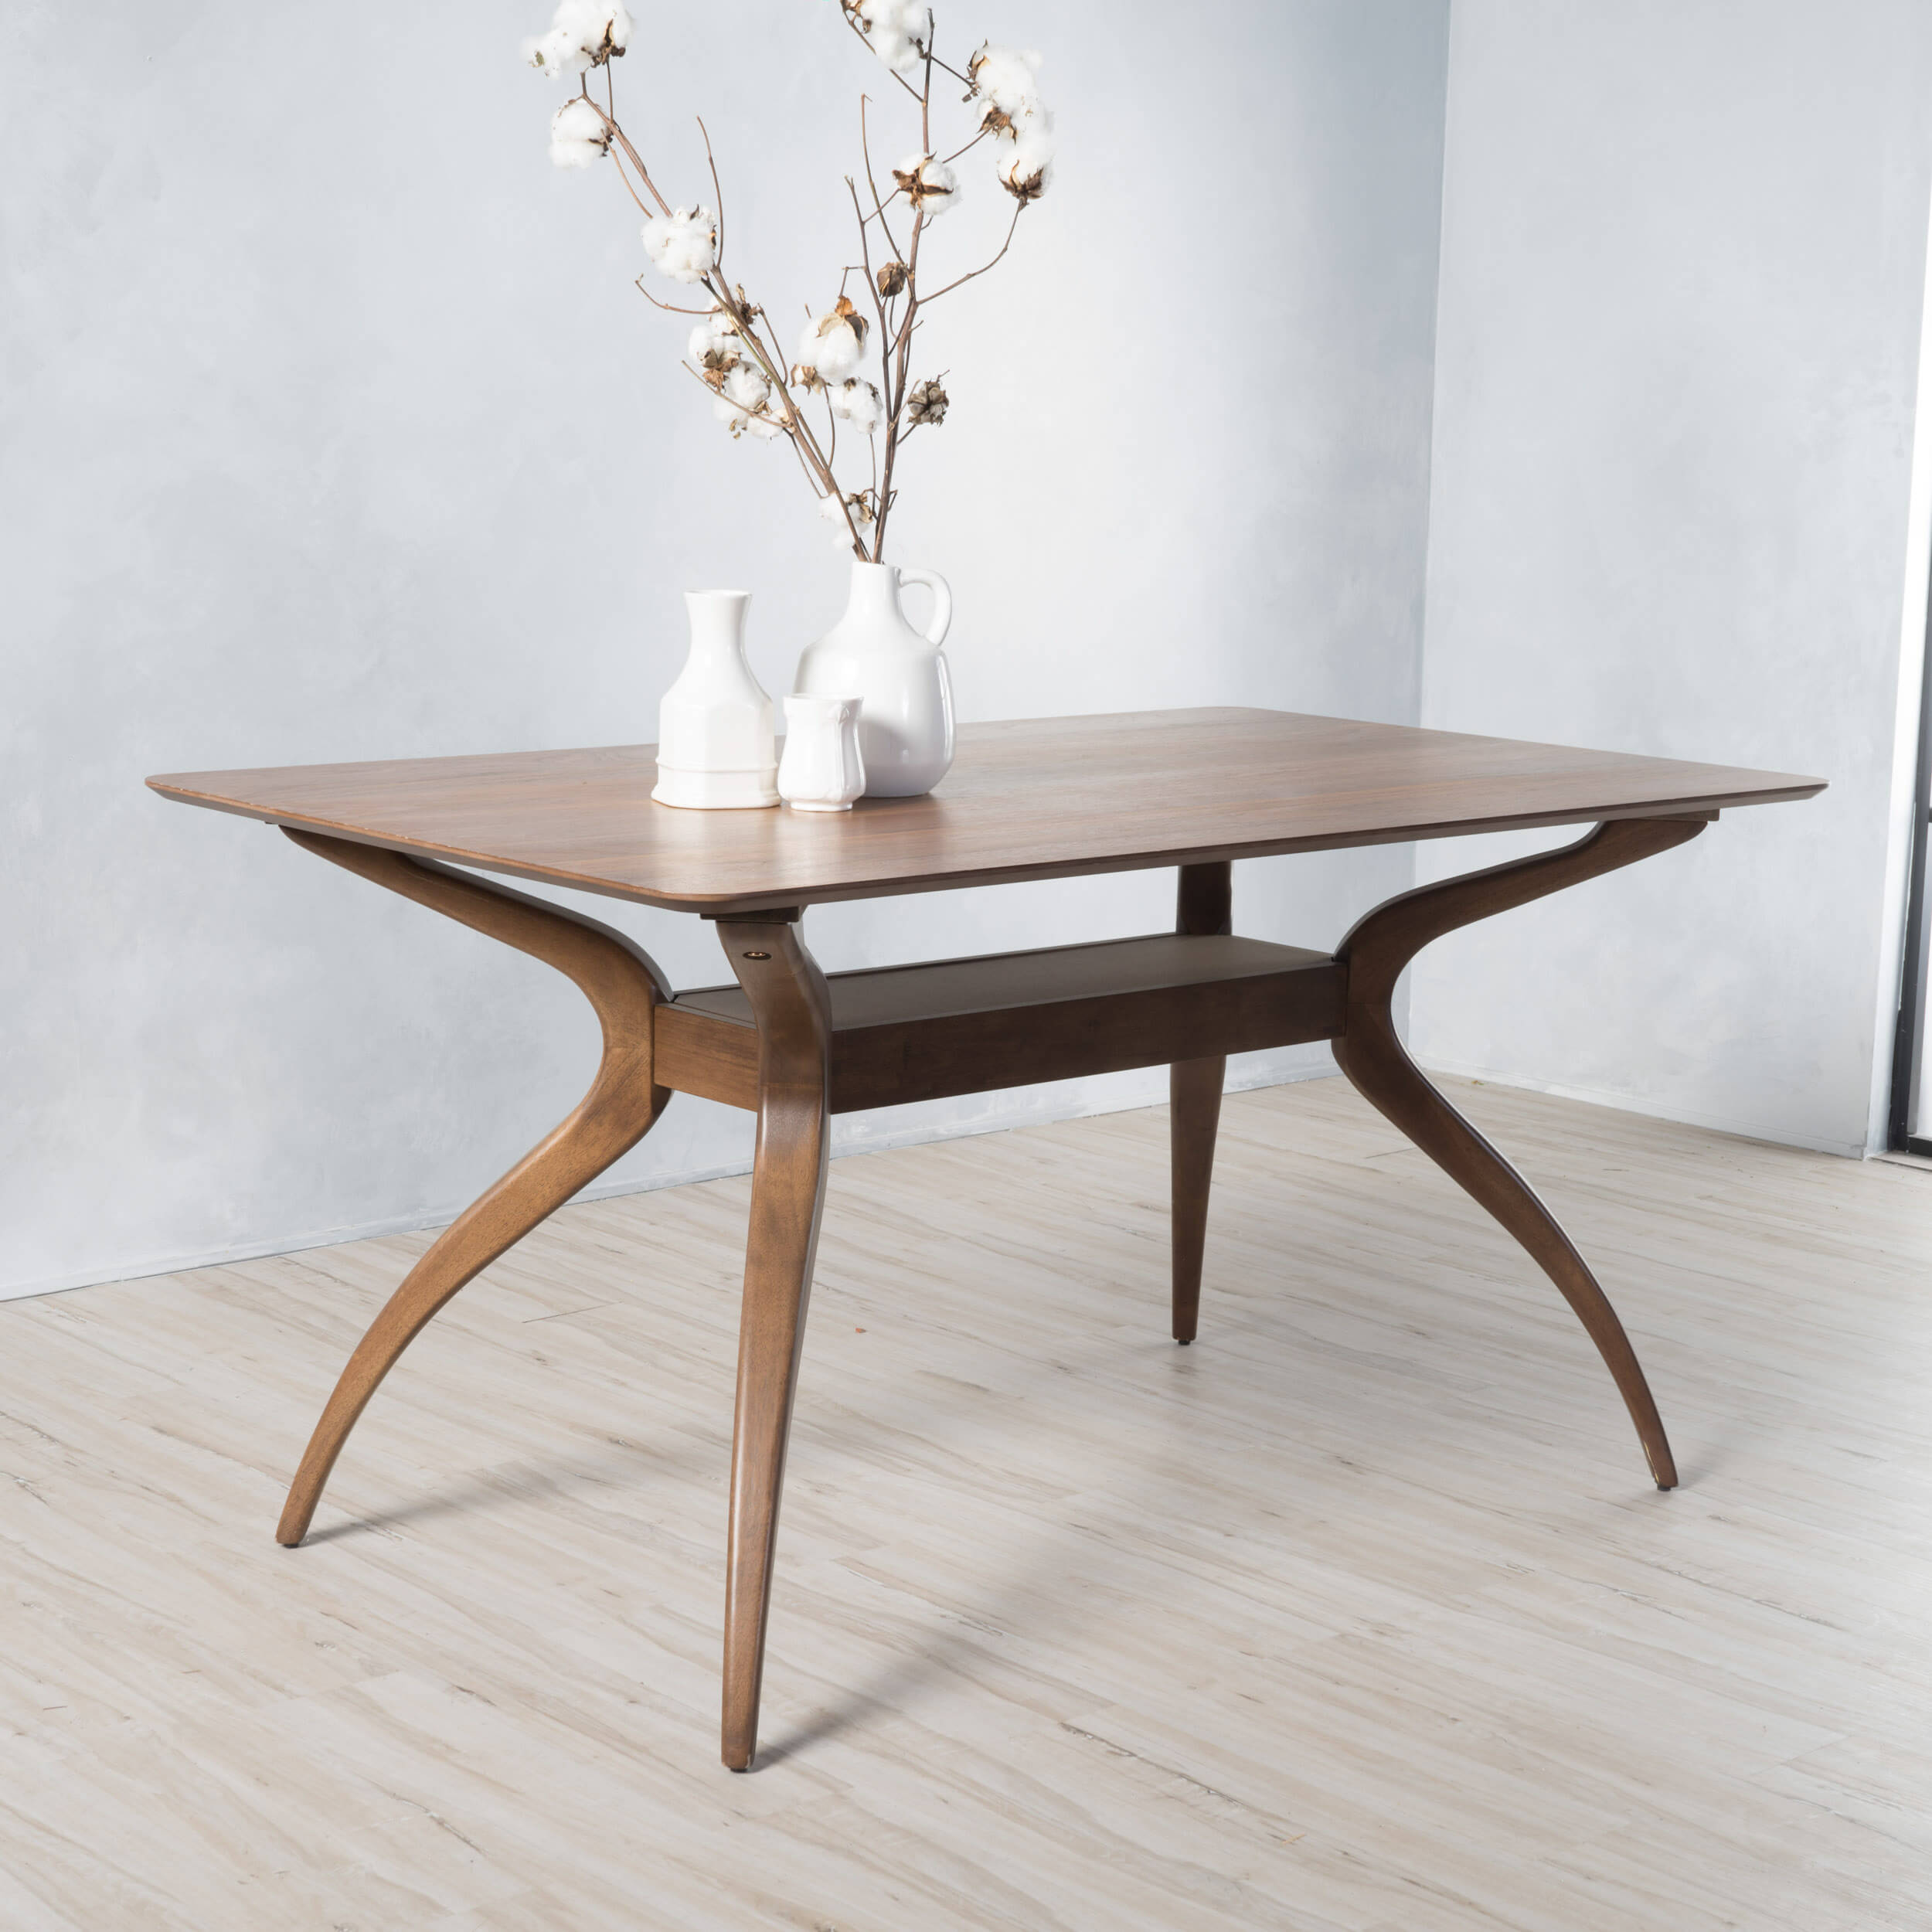 Natural walnut finish hardwood dining table